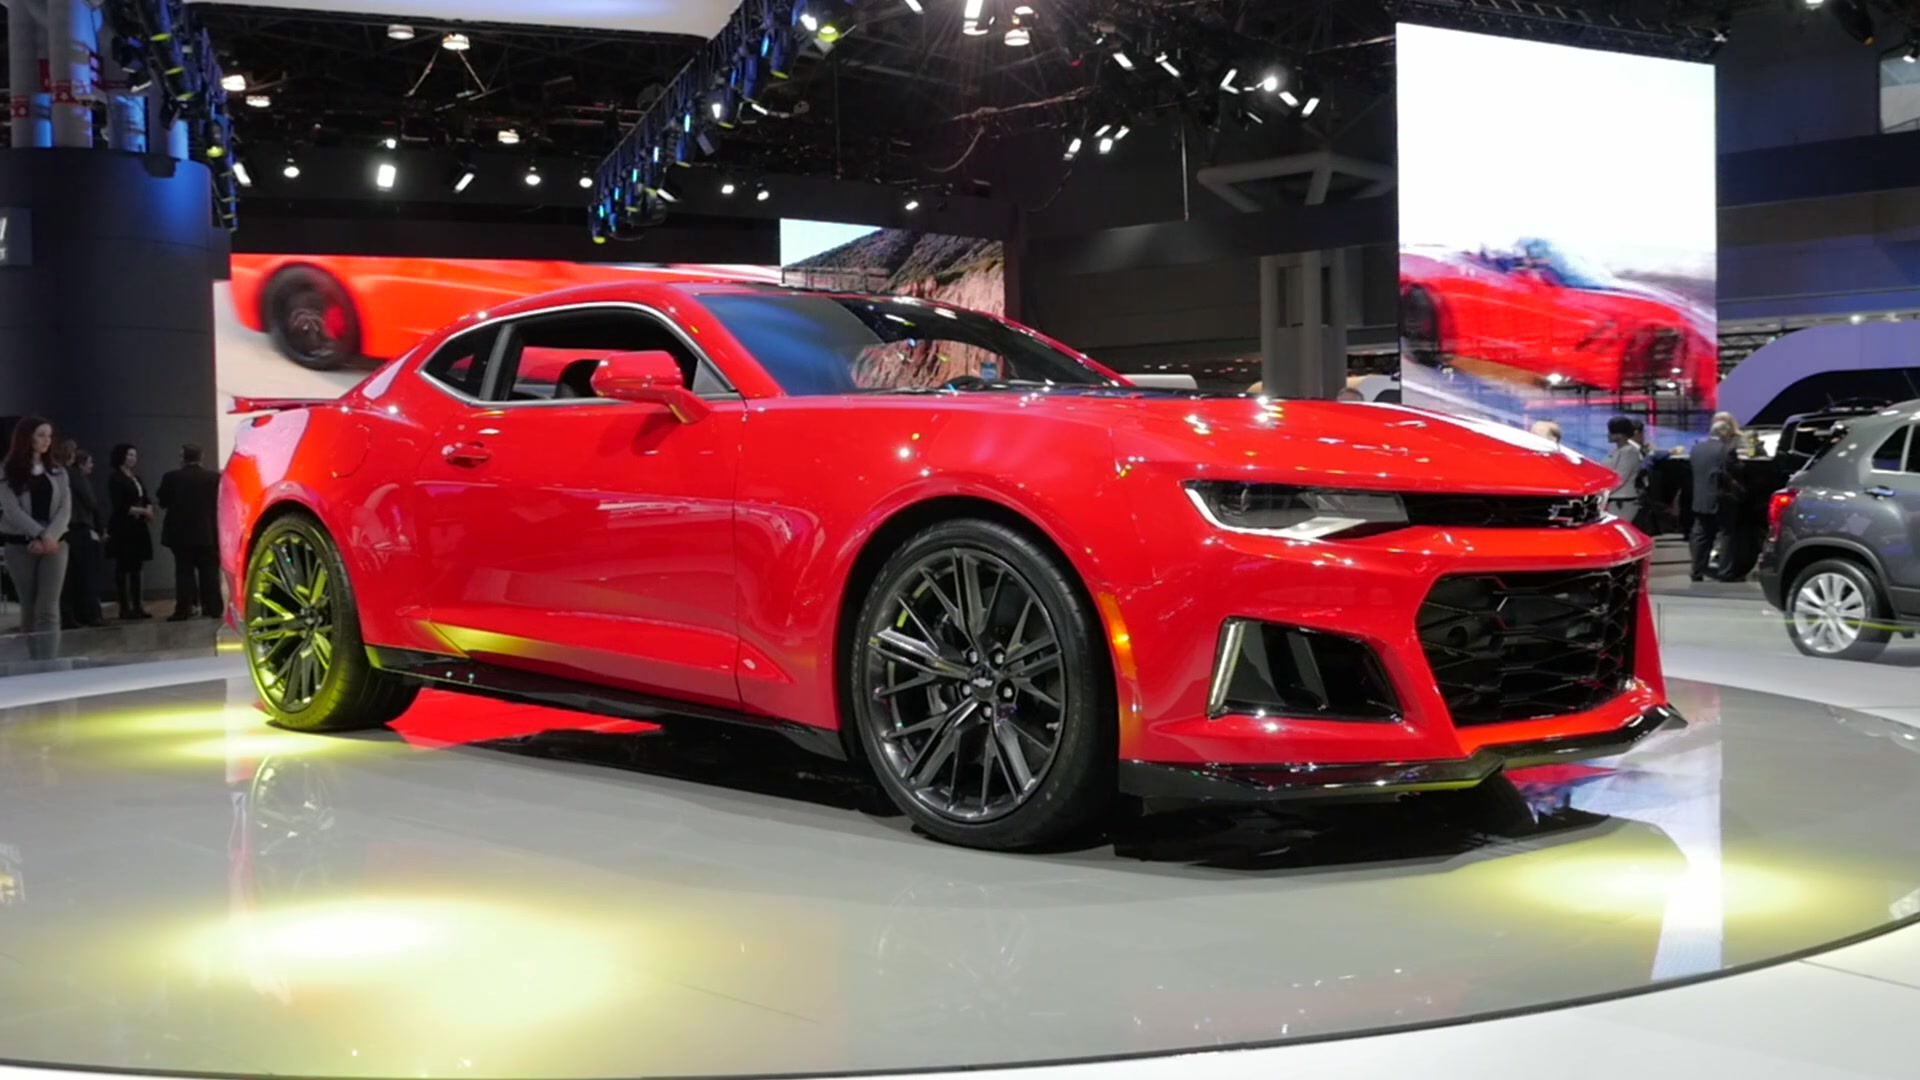 2017 Camaro 1LE Not Available With 2SS Trim | GM Authority